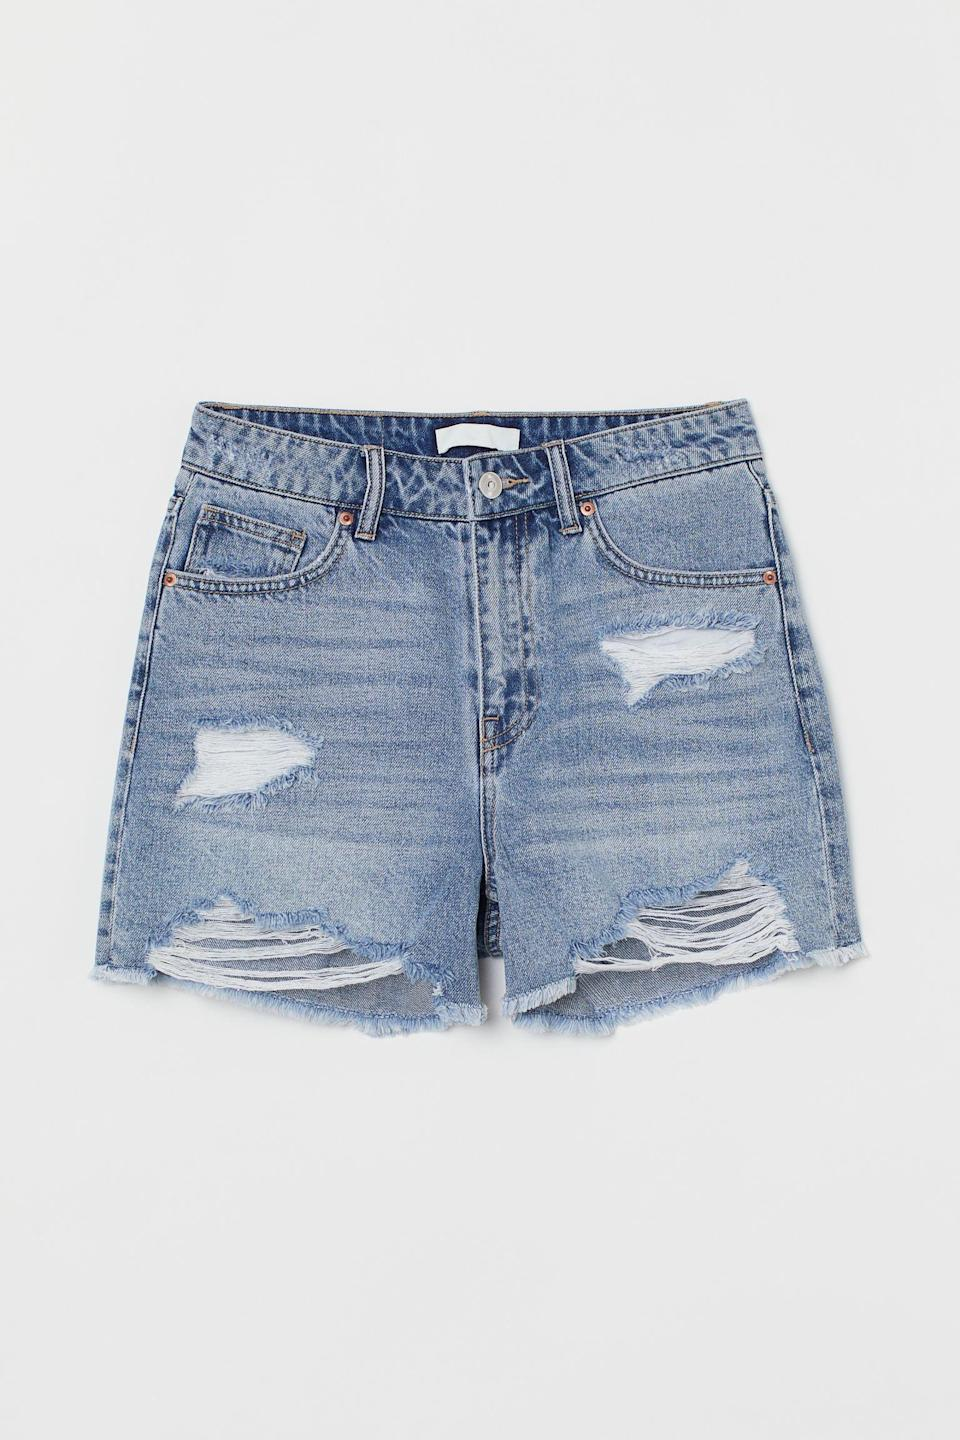 <p>If you're looking for a distressed pair, snag these cool <span>H&amp;M Denim High Waist Shorts</span> ($30).</p>